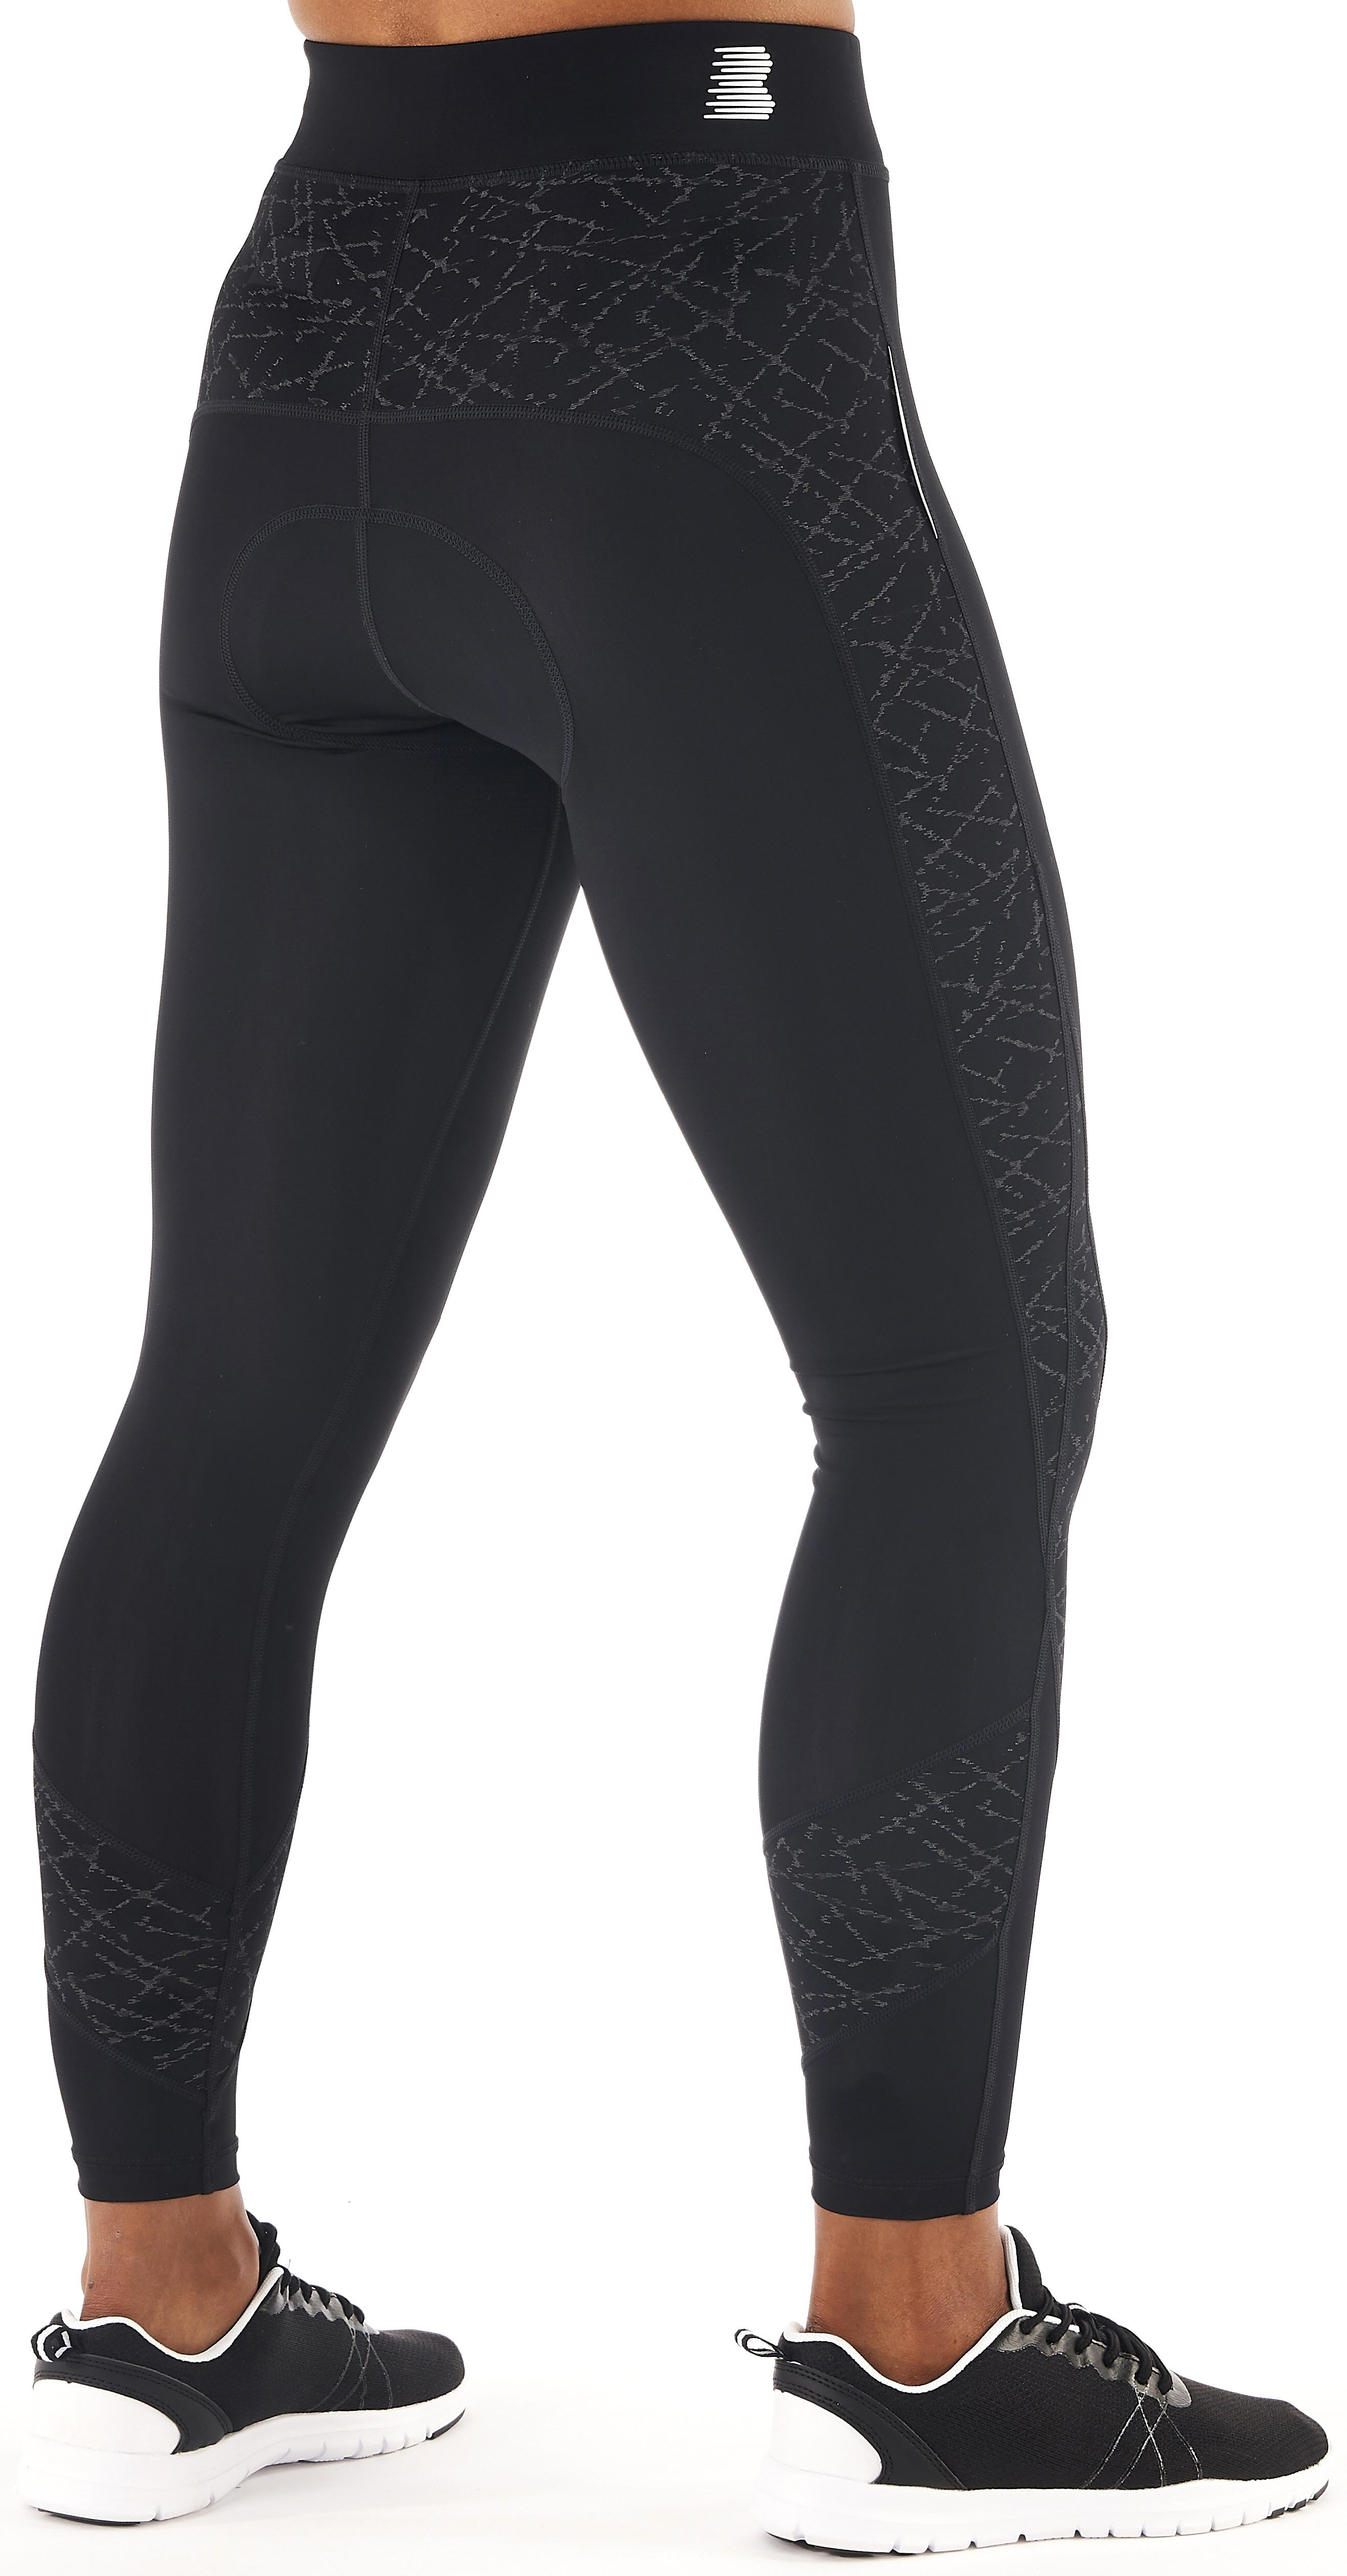 1ccdc70f198 Boardman Womens Ladies Thermal Tights Reflective Pattern Chamois Pad ...